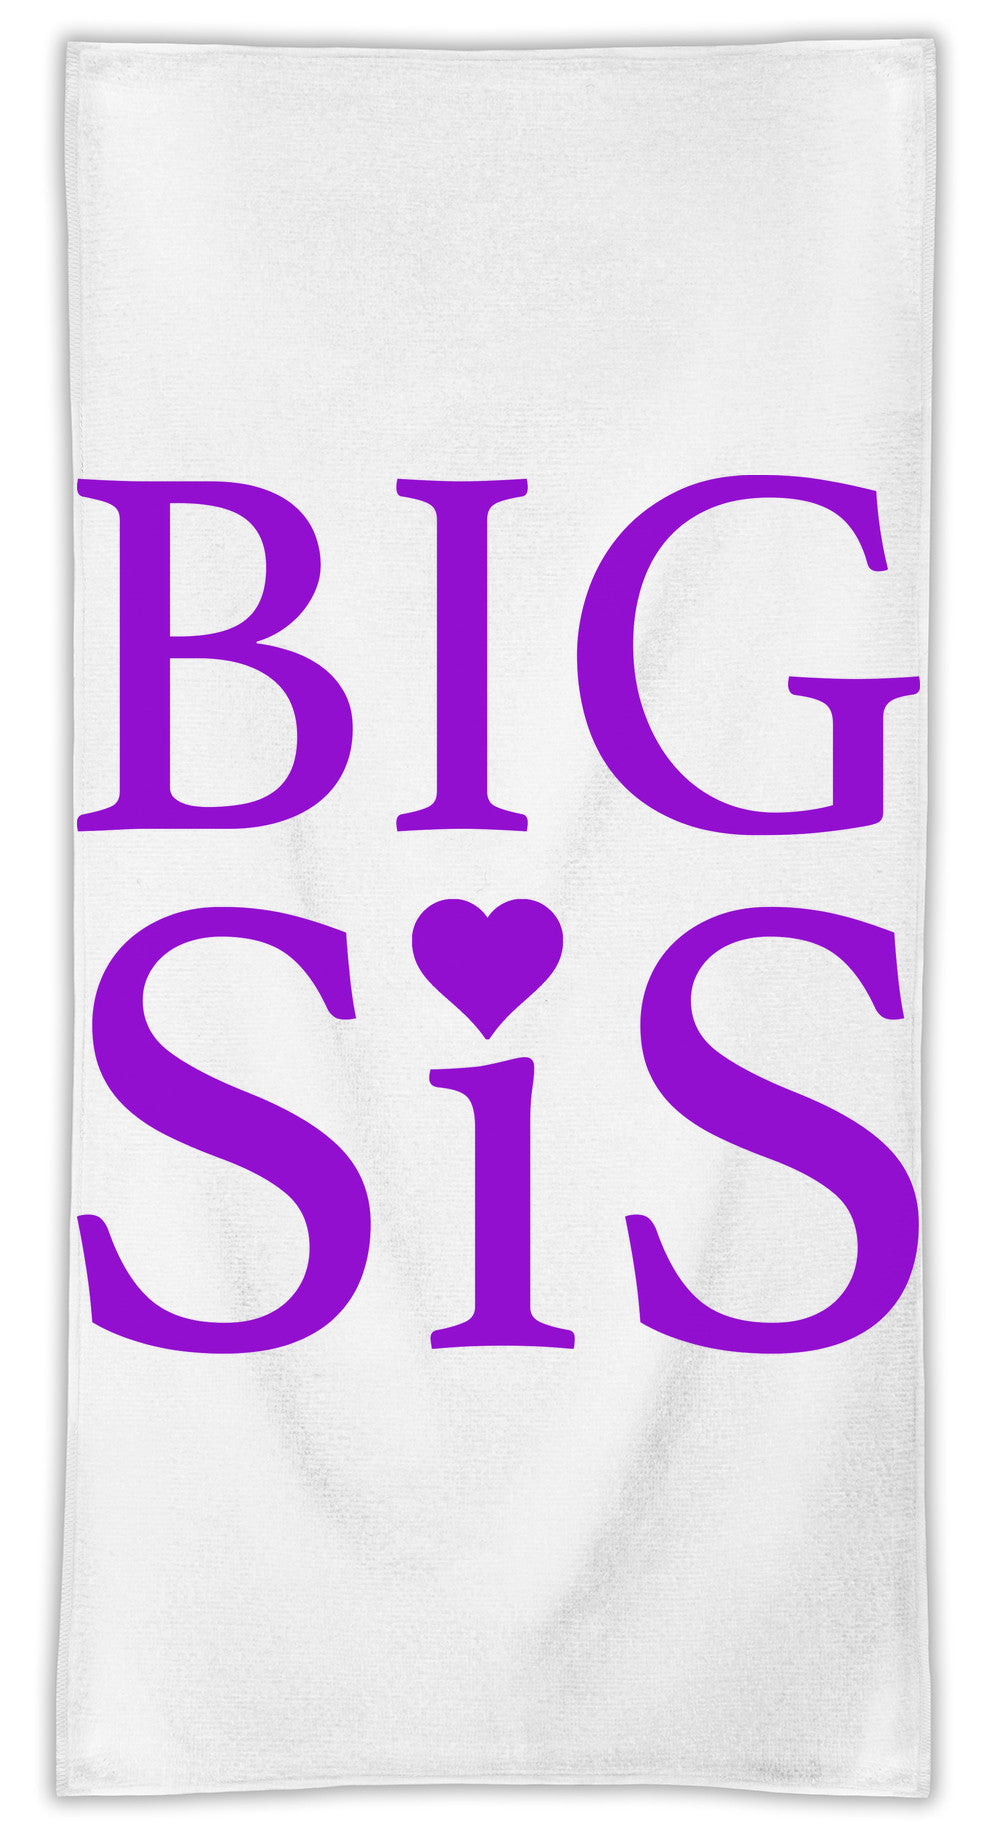 Big Sis  MicroFiber Towel W/ Custom Printed Designs| Eco-Friendly Material| Machine Washable| Available in 3 sizes| Premium Bathroom Supplies By Styleart